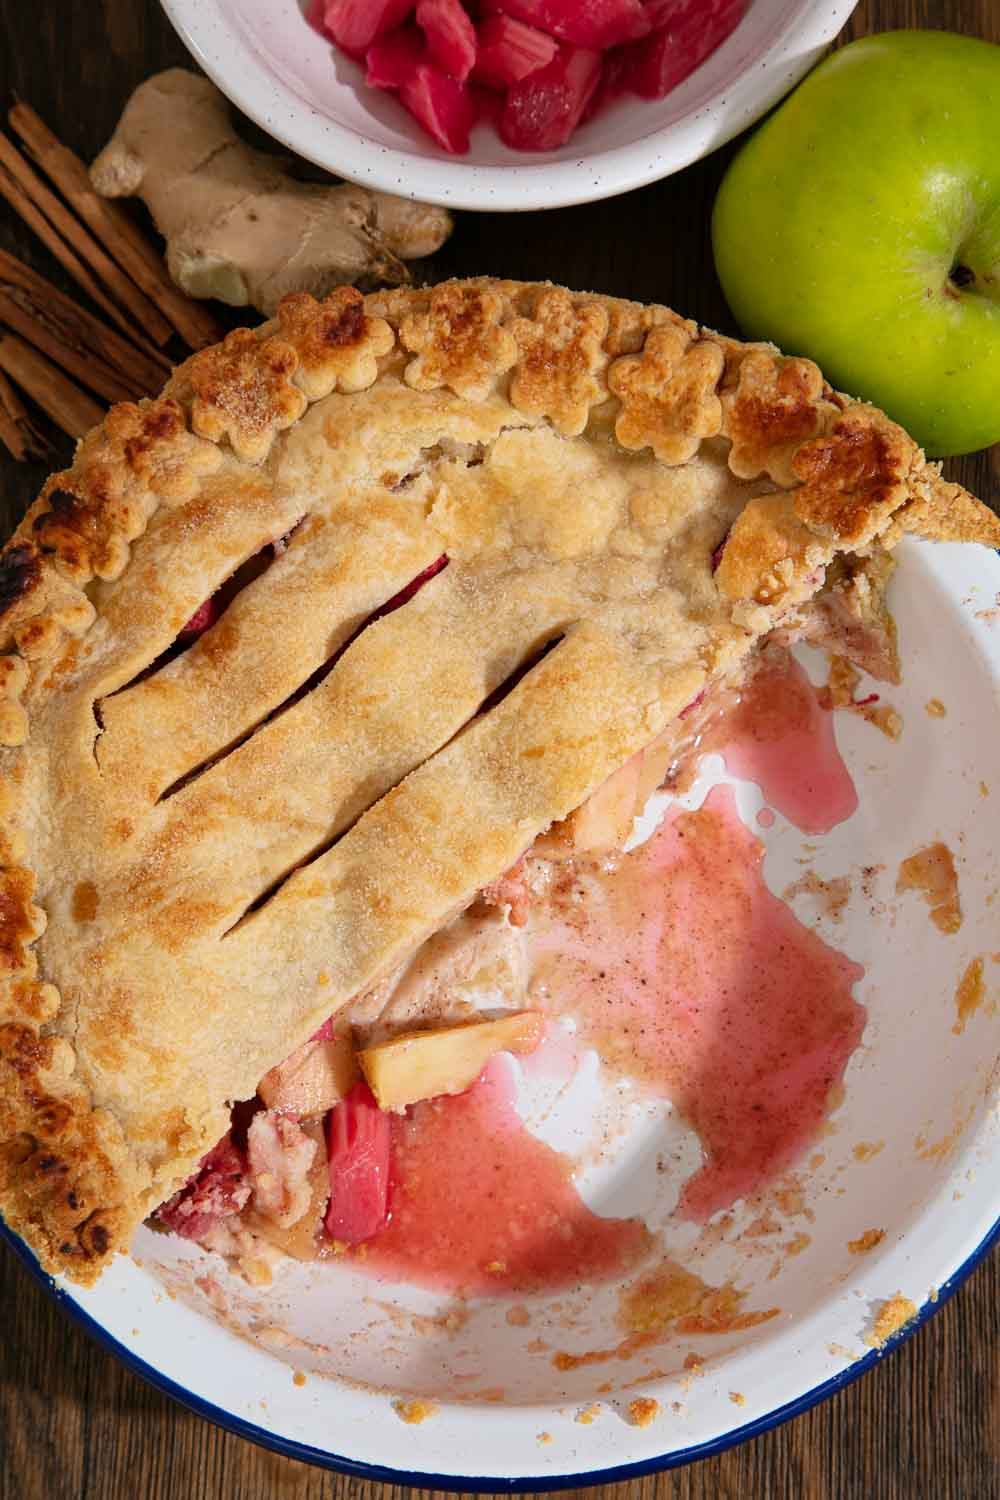 Rhubarb and apple pie surrounded with the ingredients to make it.